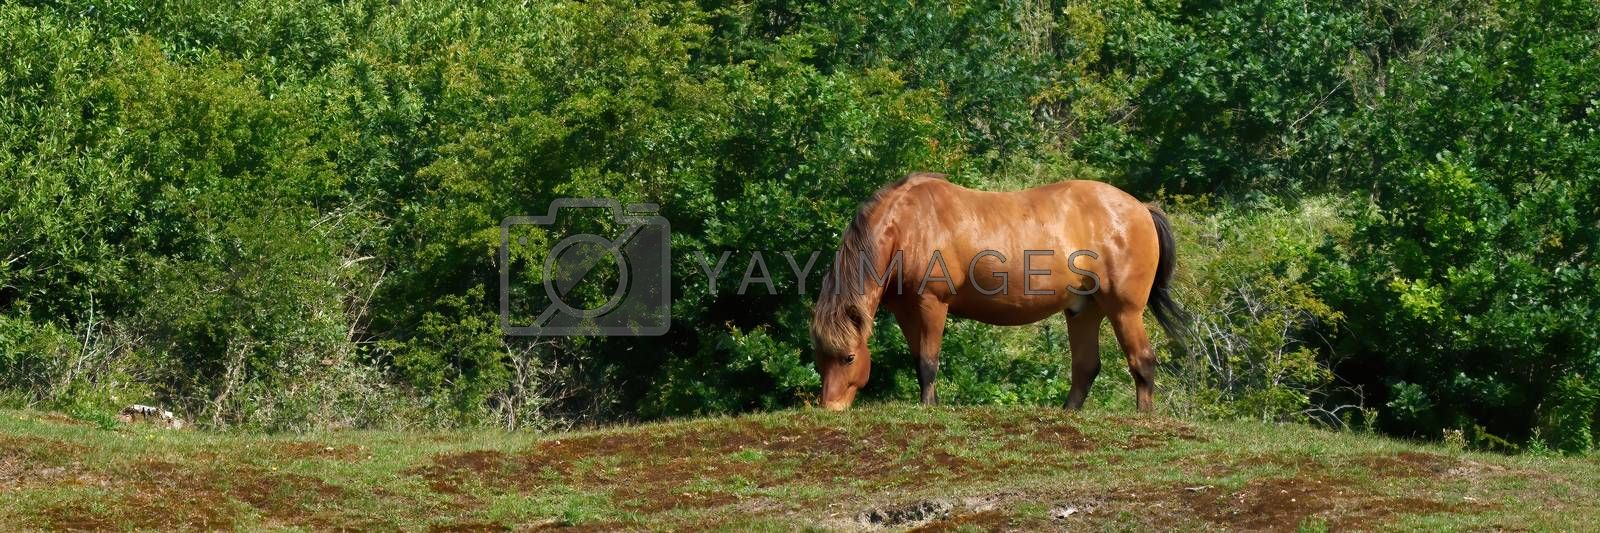 Exmoor horse grazing on the pasture. A horse breed used for nature conservation management.